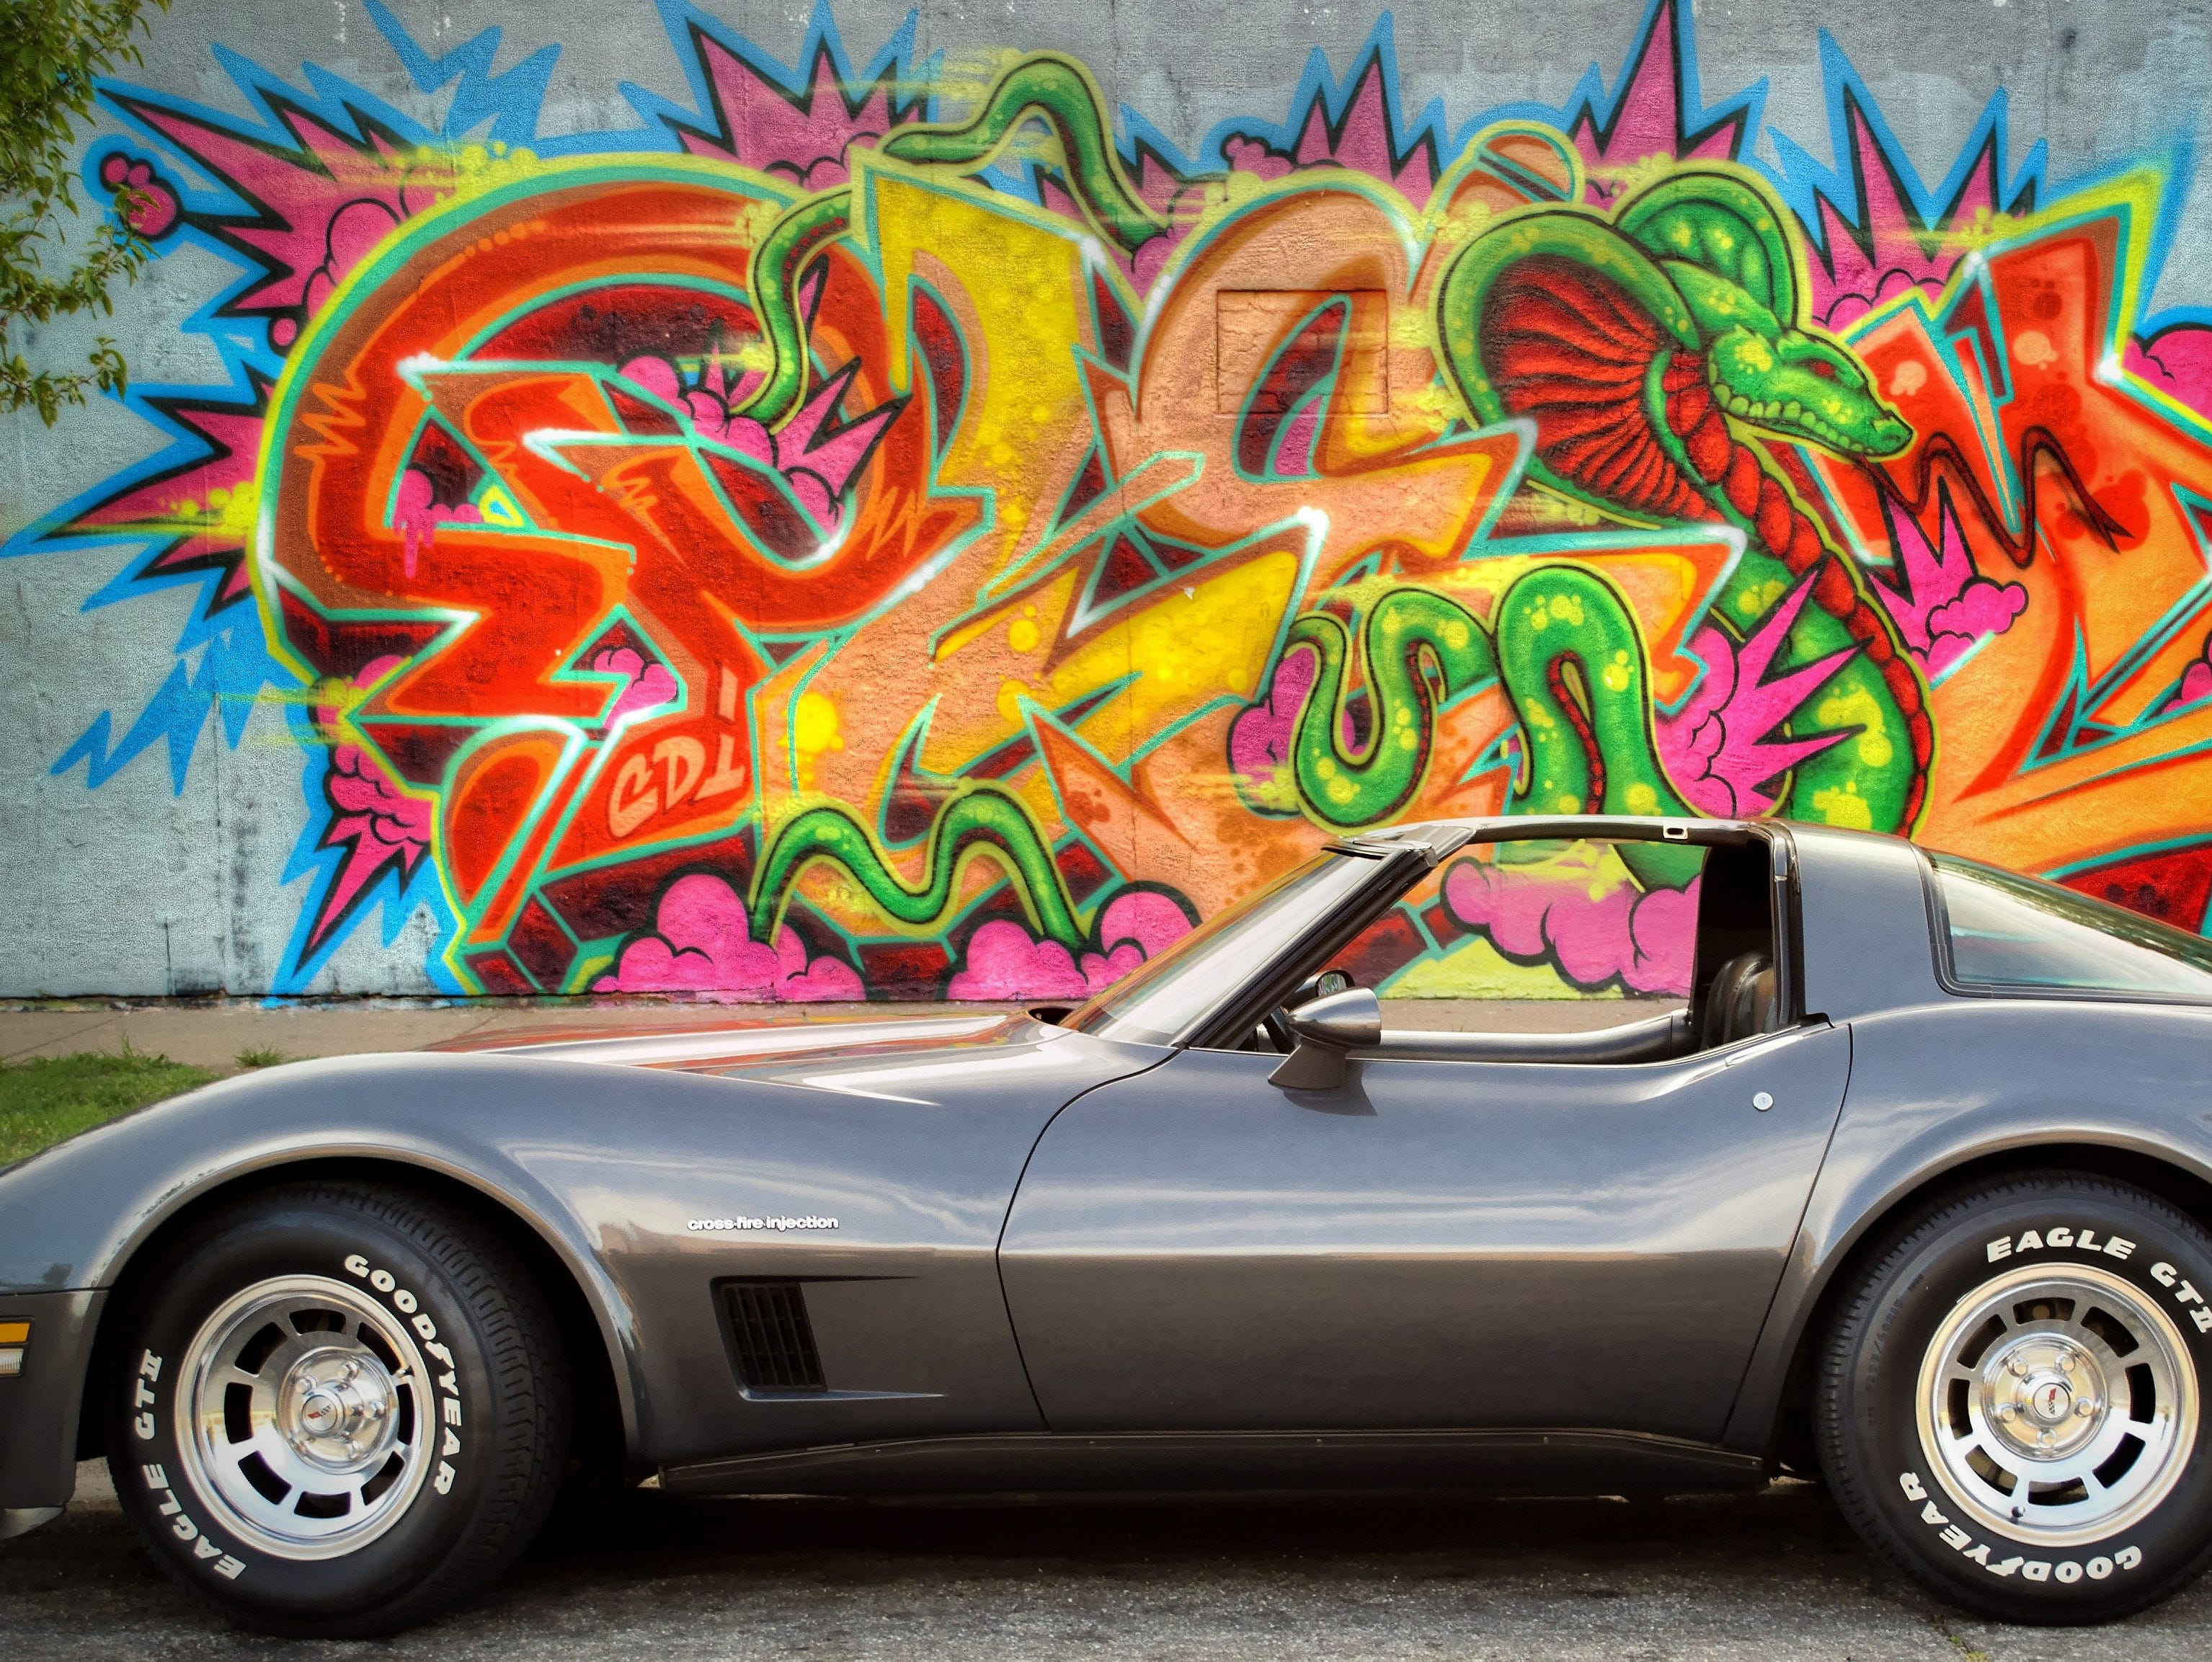 """We're honoring readers' """"Best of Corvettes"""" for the Chevy Corvette's 60th Anniversary and the debut of the iconic brand's latest 2014 model. Here is Brad Oliphant's1982 Chevy Corvette pictured outside of a tattoo parlor in Wichita, Kan."""